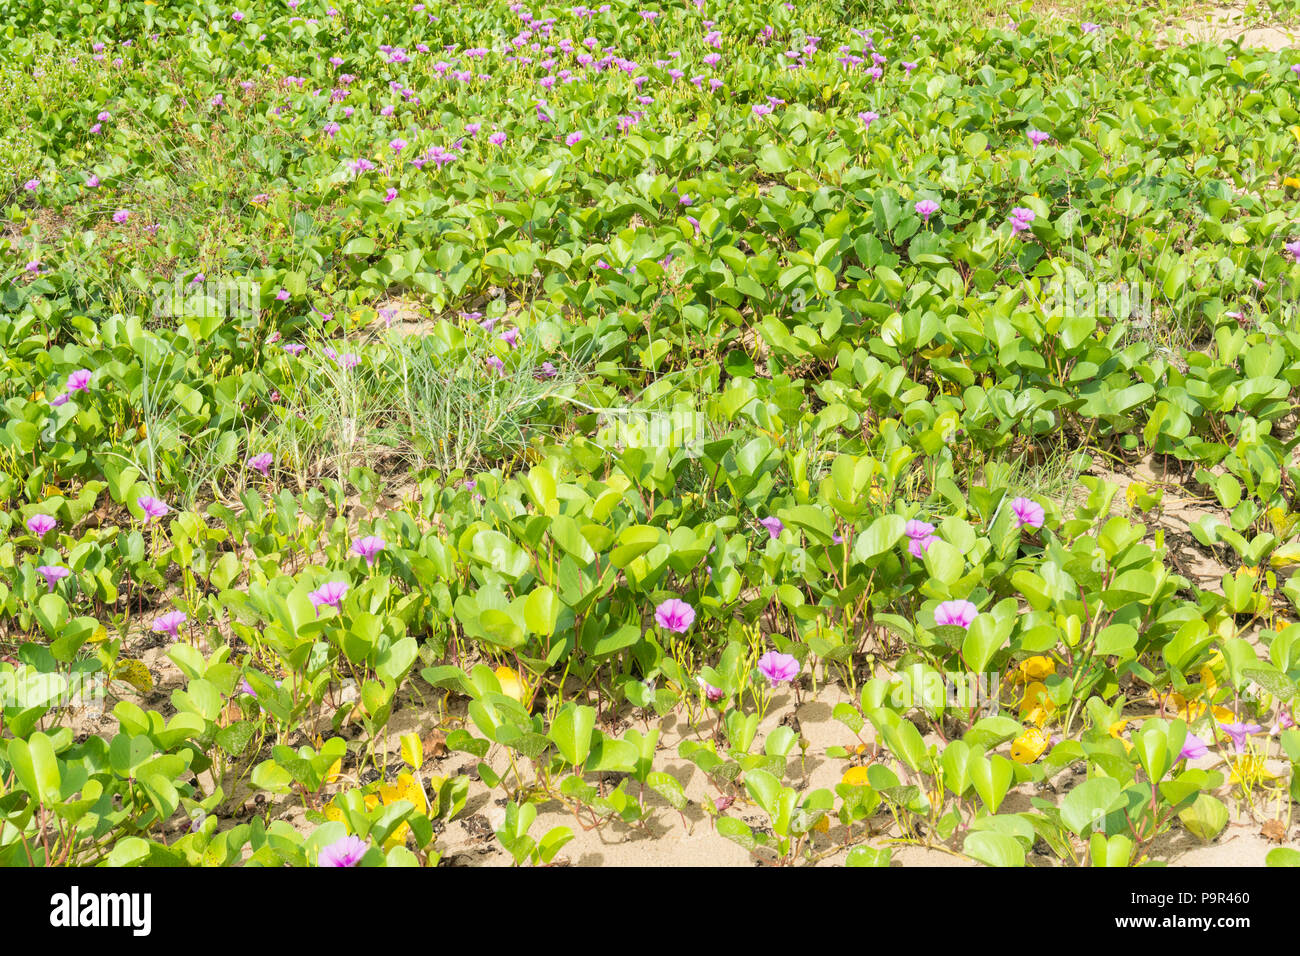 Beach Morning Glory or Goat's Foot Creeper texture background on the beach. Natural beach morning glory or Goat's foot creeper - Stock Image